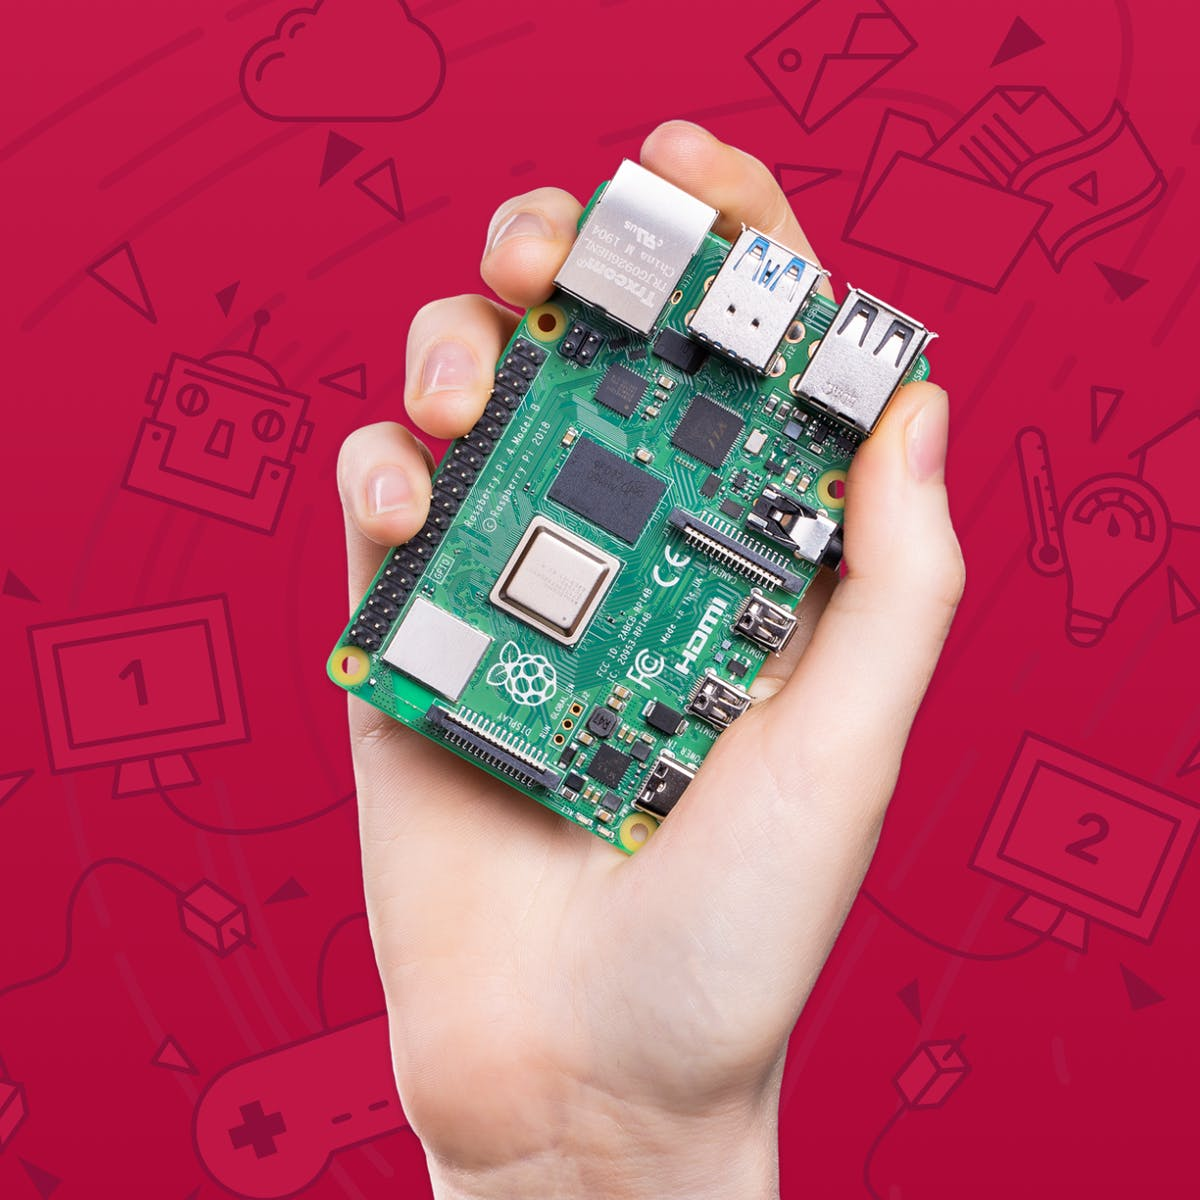 10 of the Cleverest Use-Cases for the Amazing, Tiny, Raspberry Pi Computer